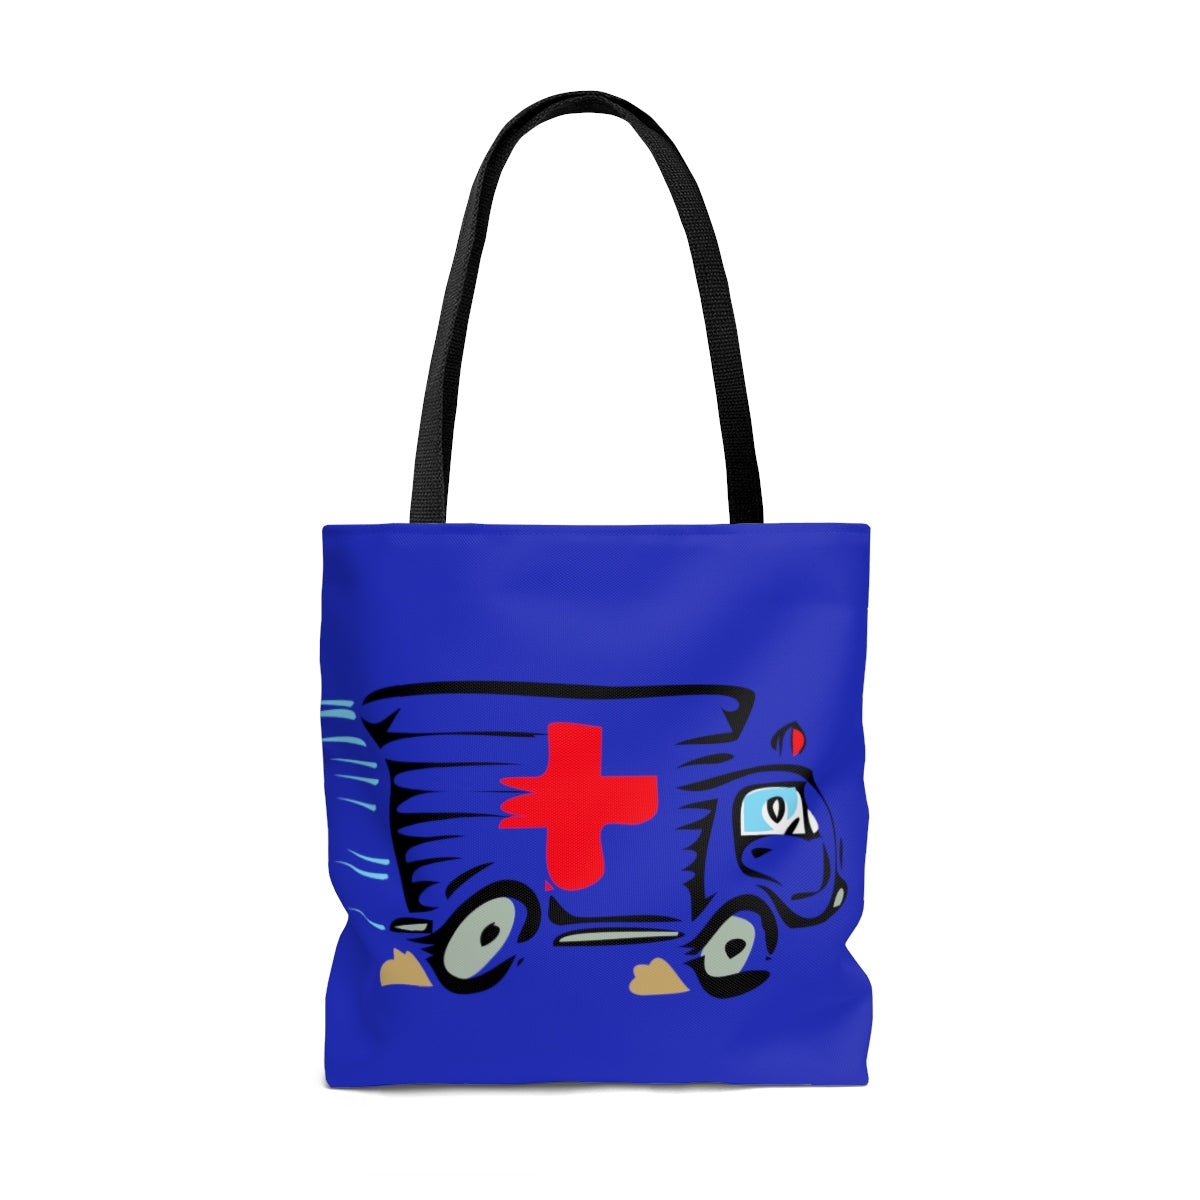 Five Toes Down Pain Tote Bag